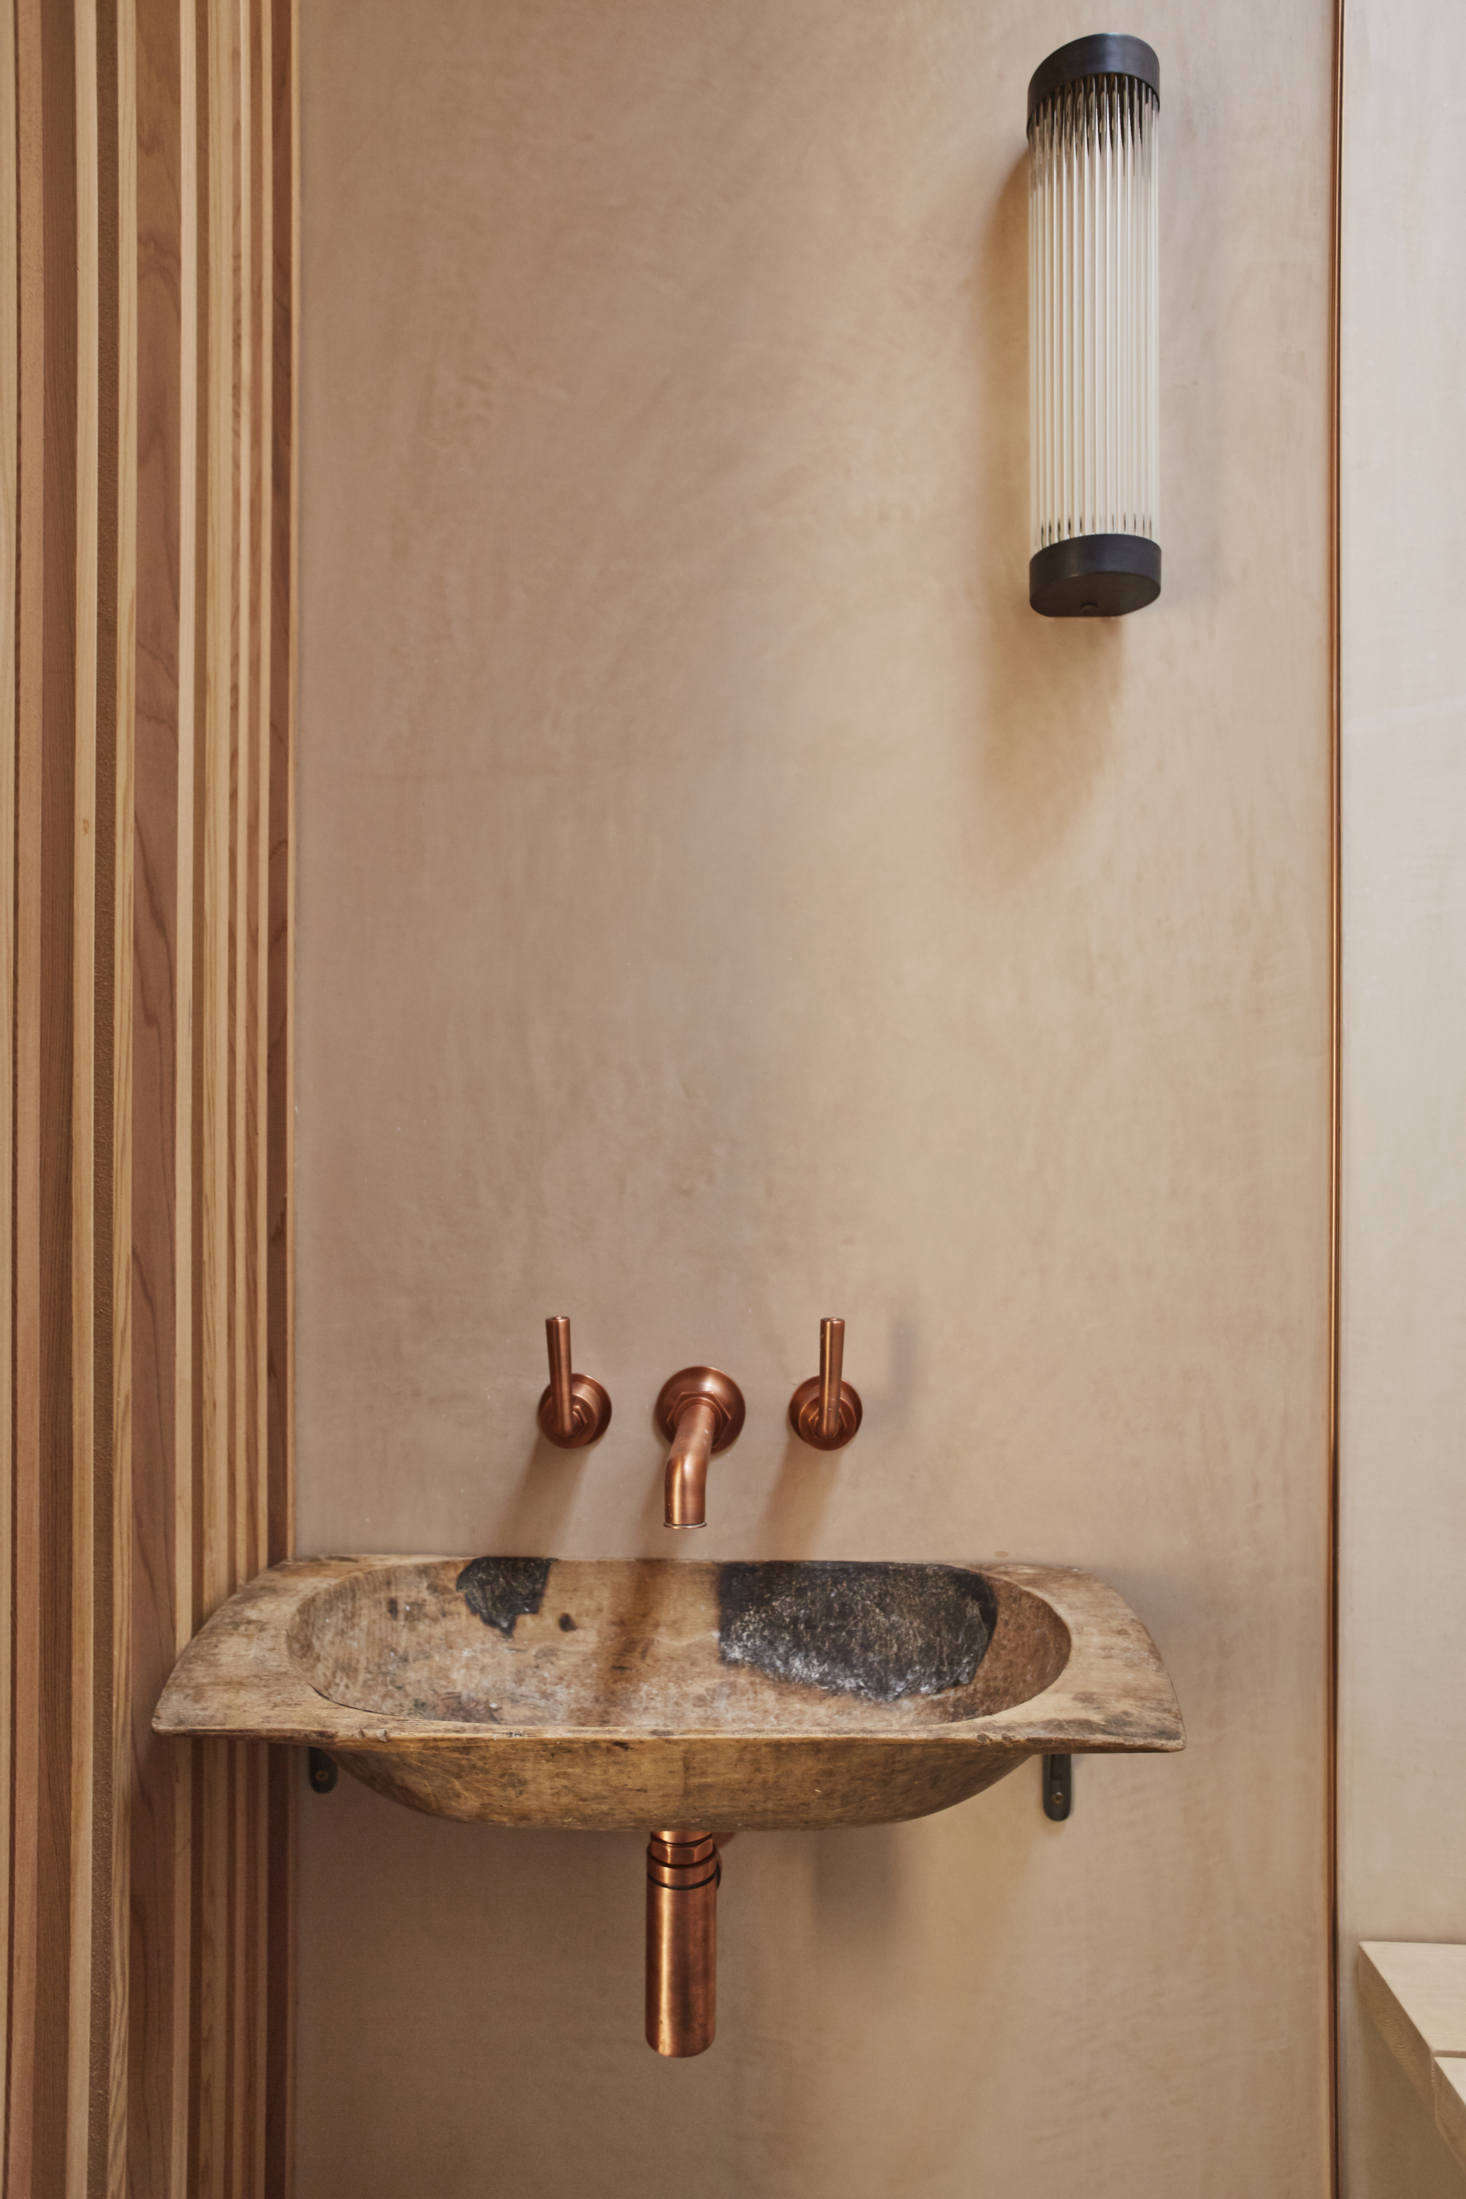 The basin is made from an old wood bread trough. The copper fixtures are from Waterworks.